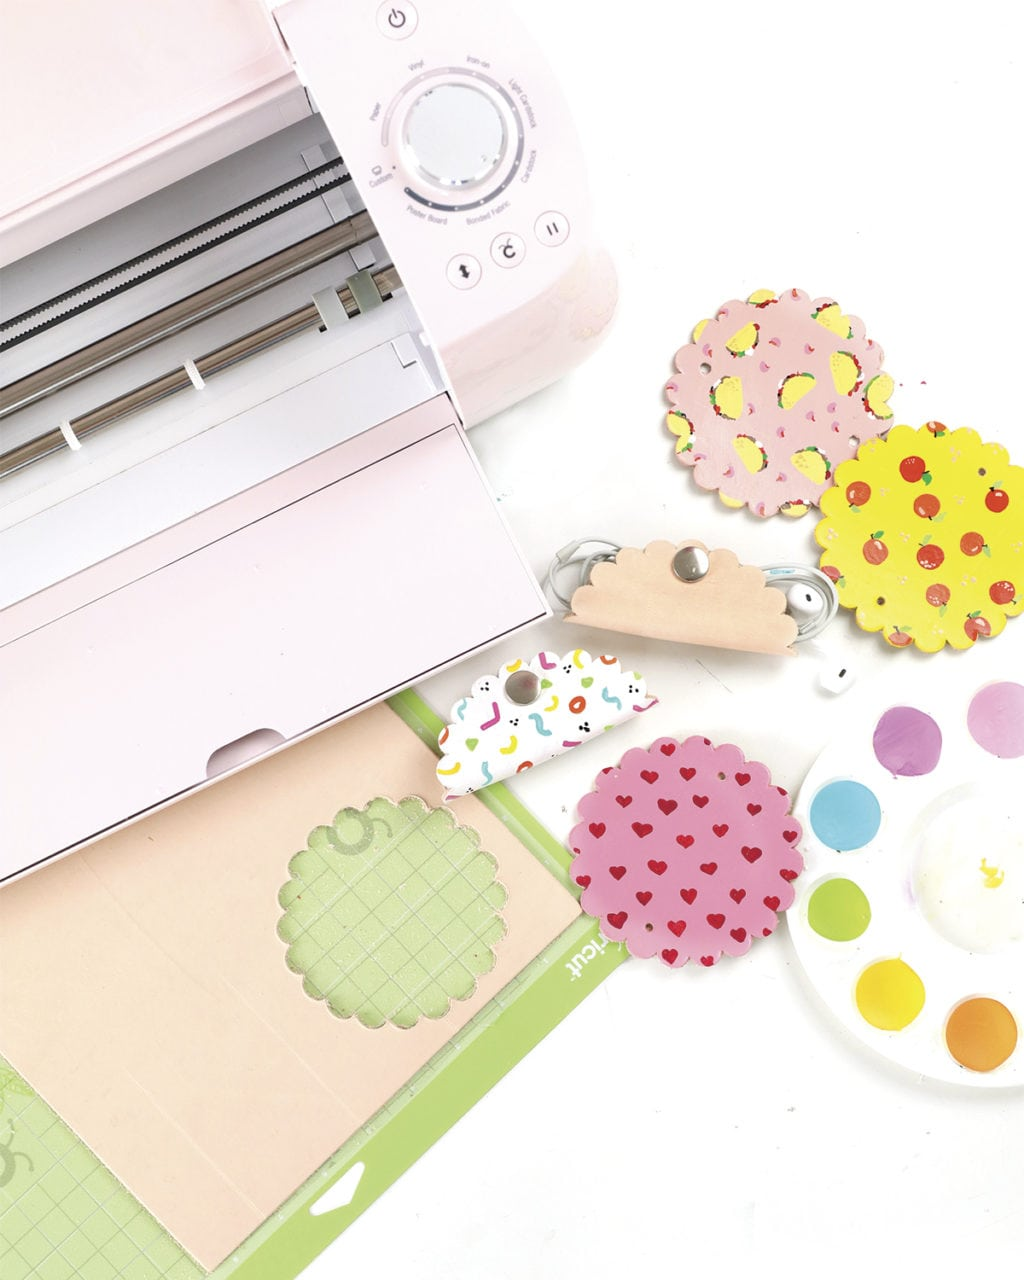 Damask Live Cutting Leather With The Cricut Explore